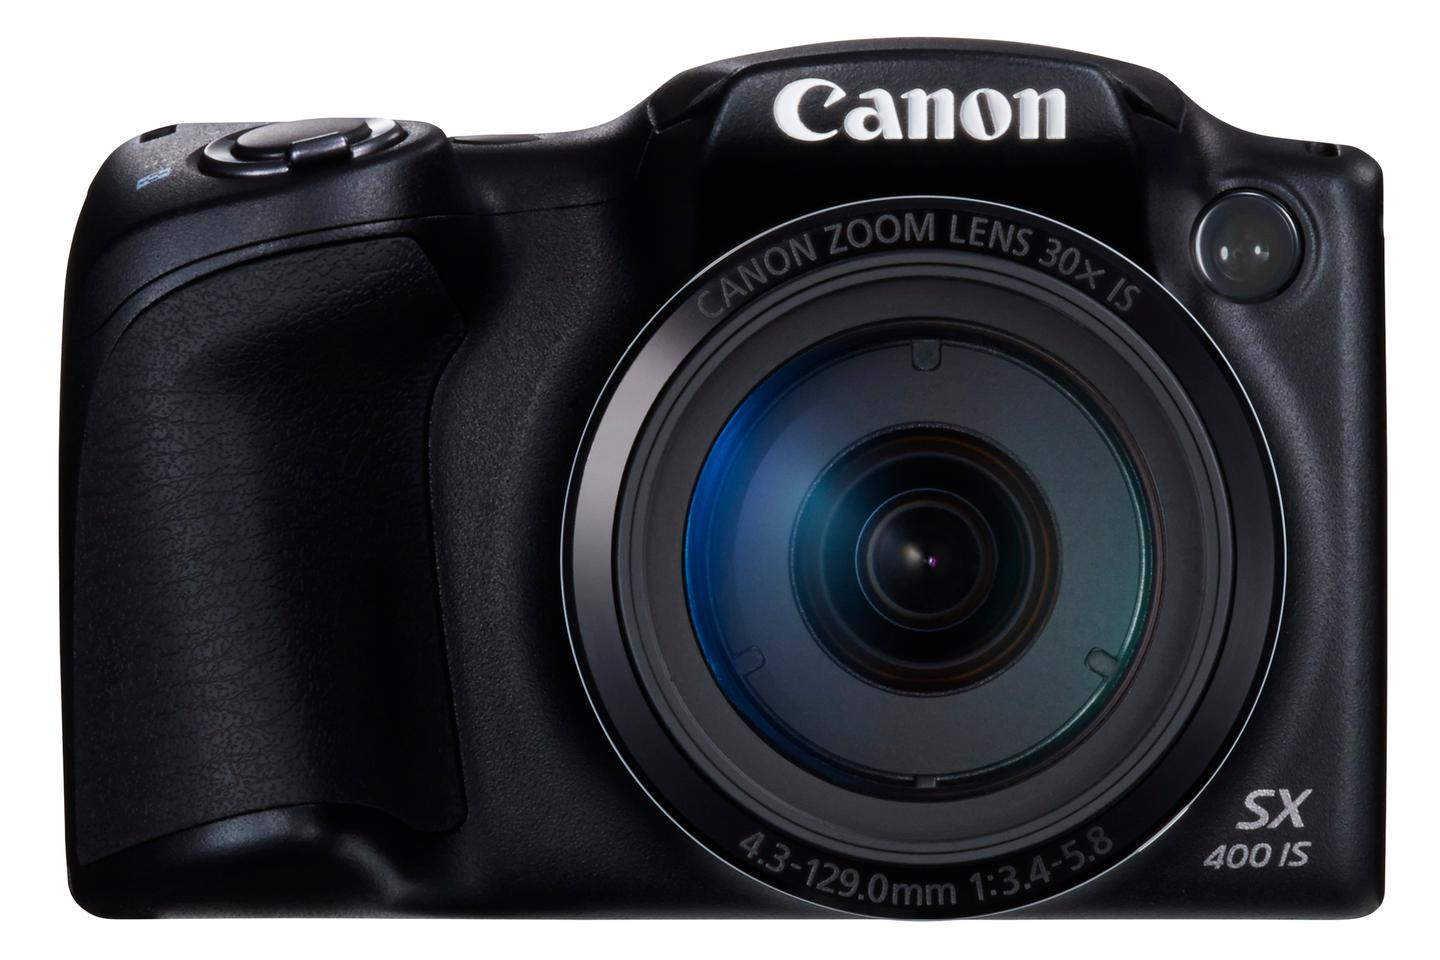 The lens on the Canon PowerShot SX400 IS is a 24-720-mm equivalent F3.4-F5.8